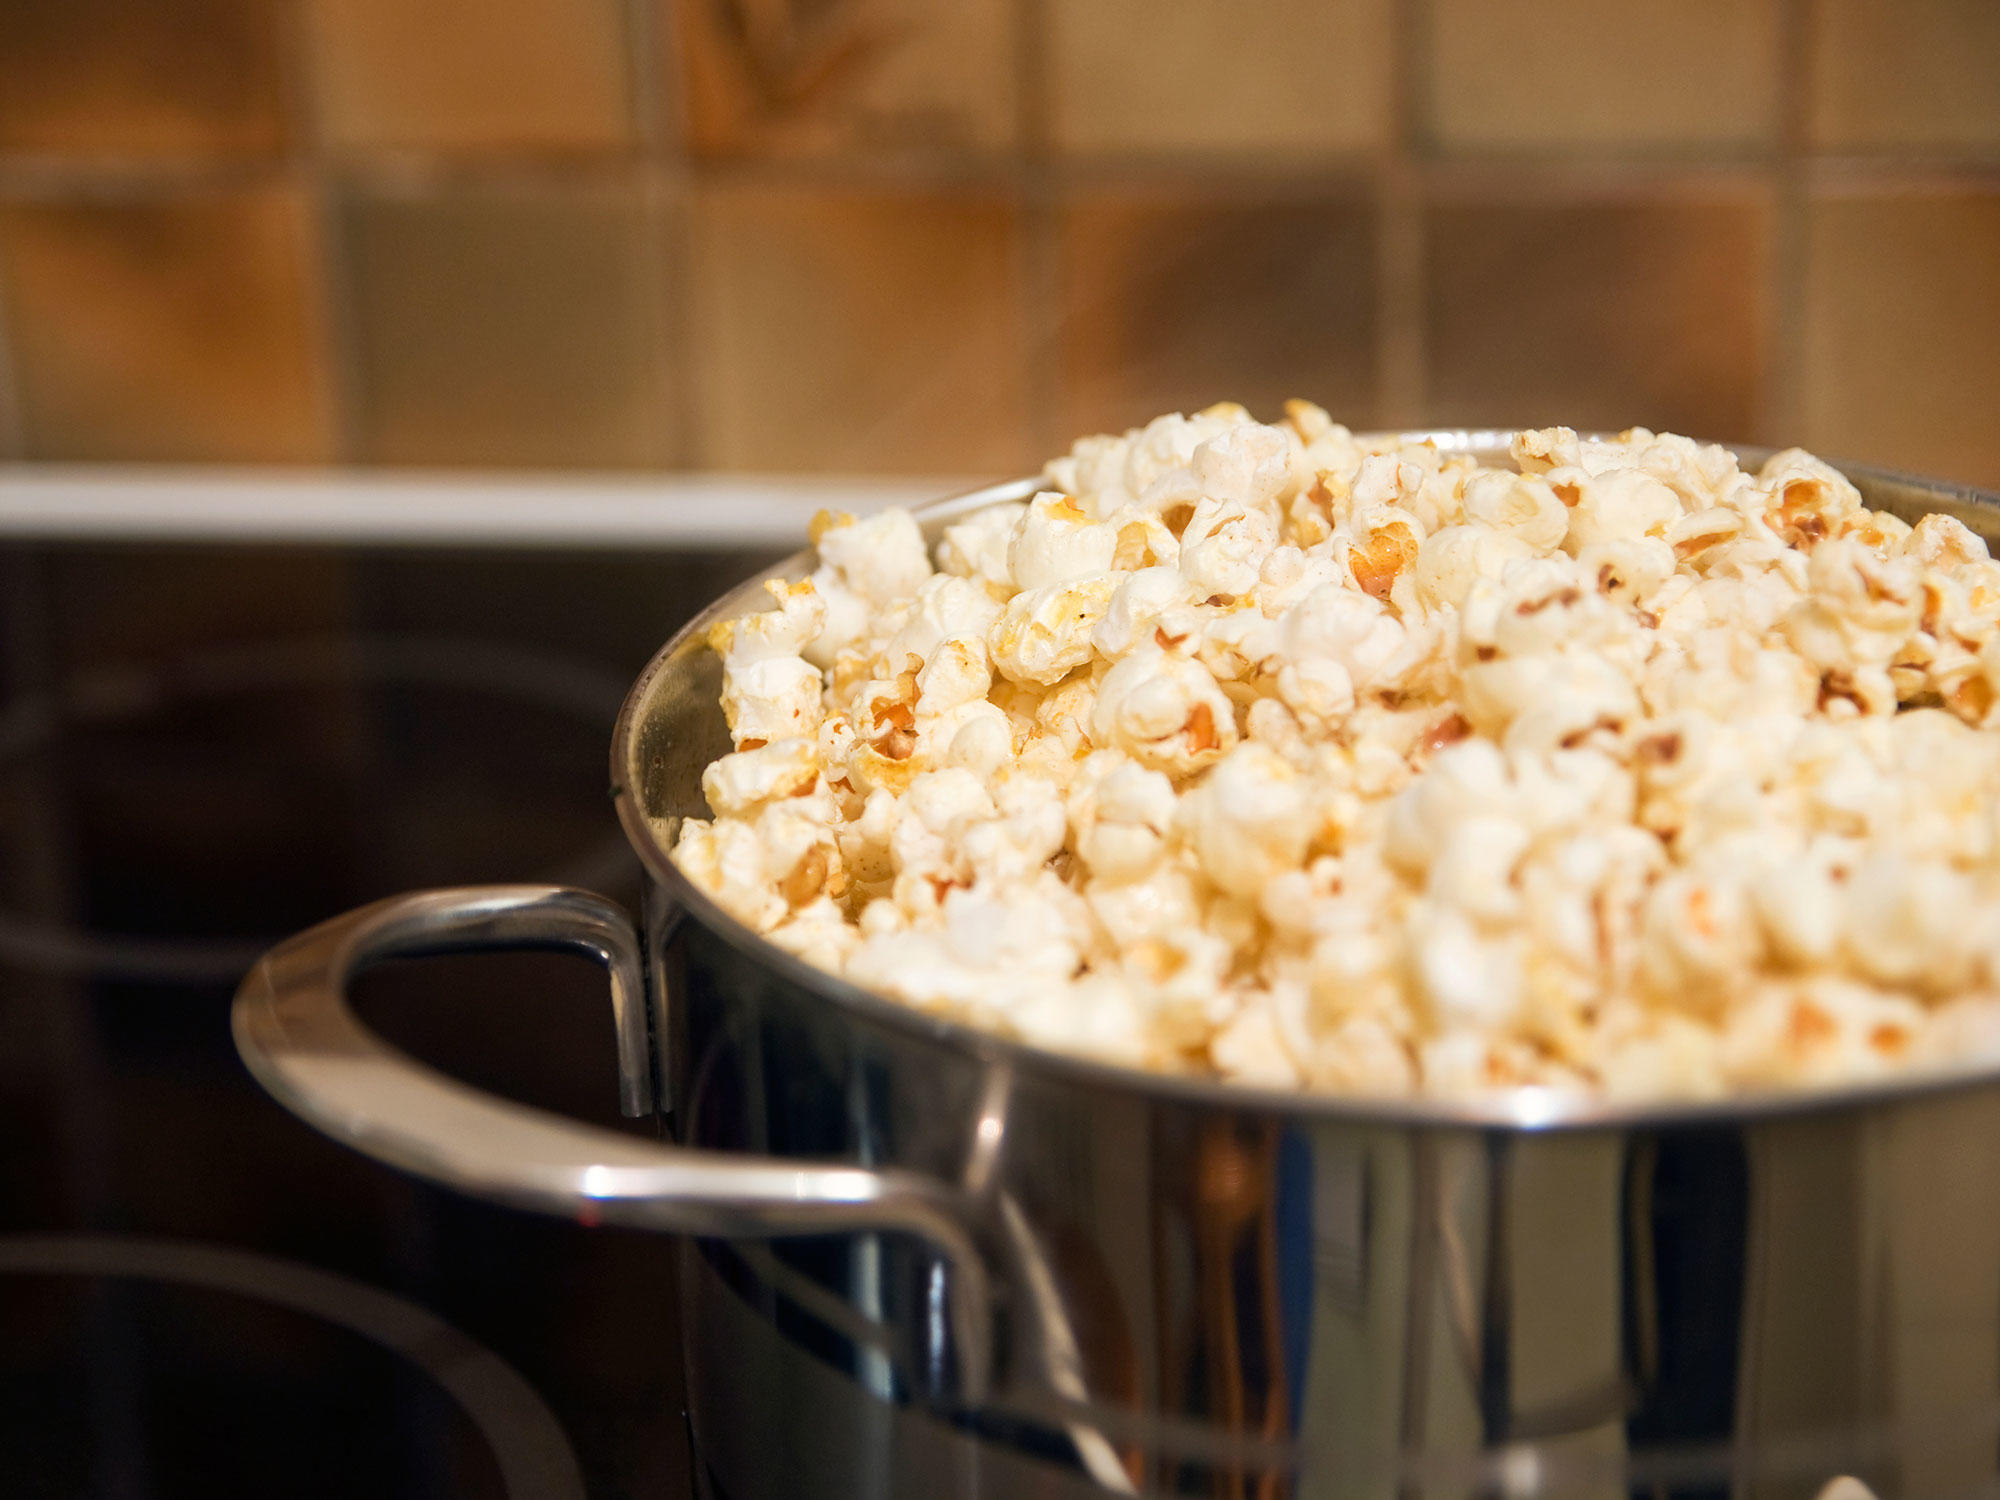 3 Ways to Make Popcorn That Won't Cause Lung Disease 1802wStoveTopPopcorn